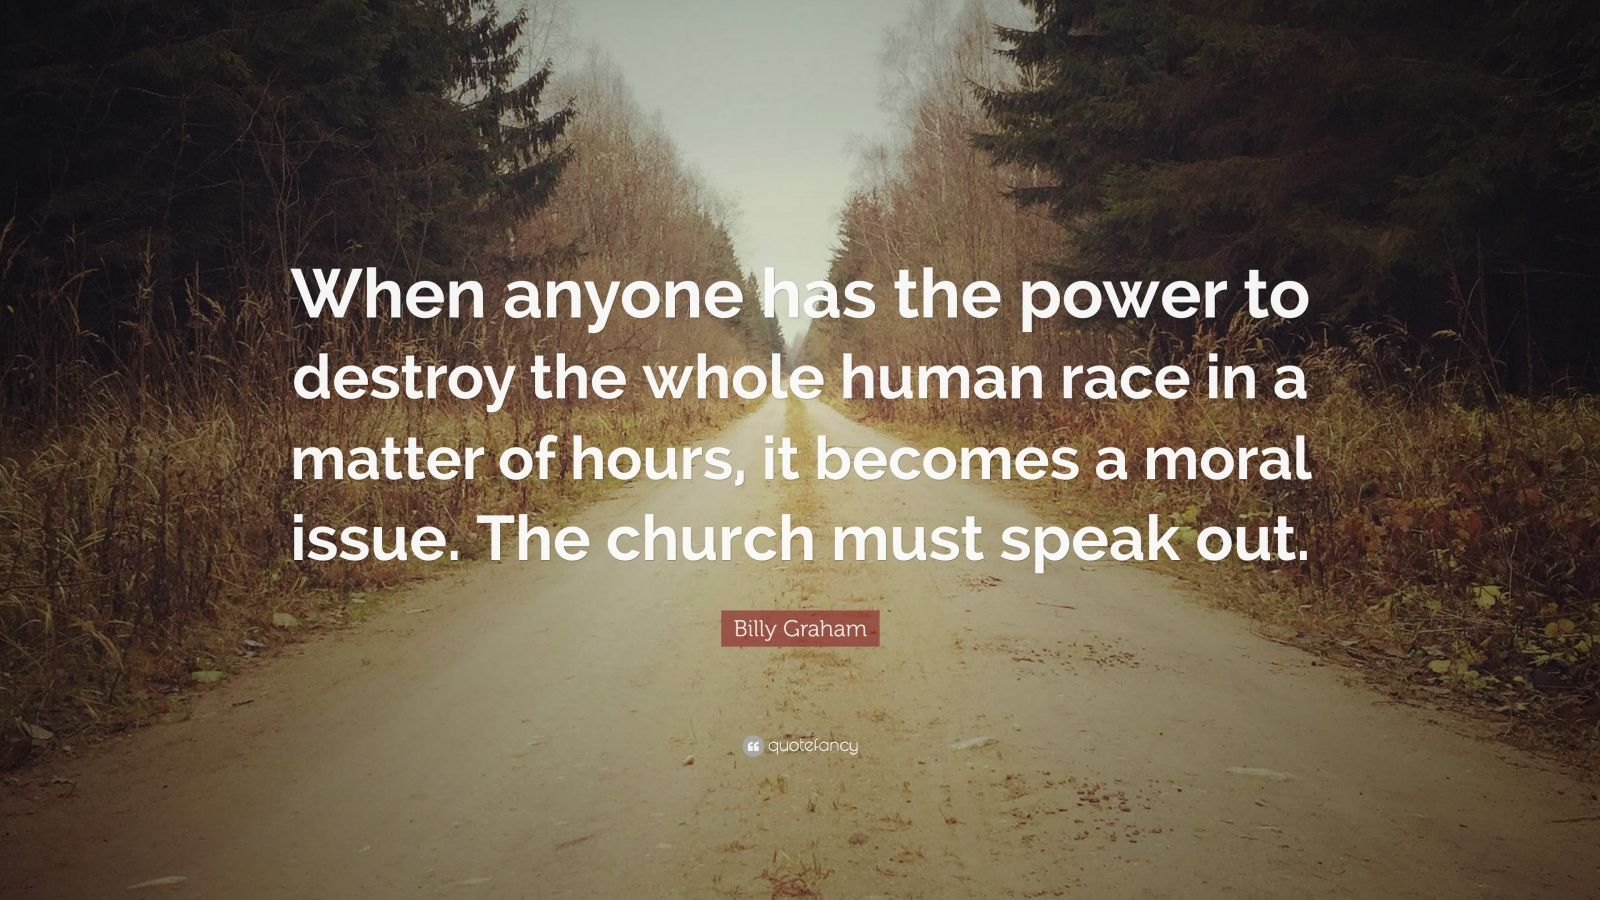 """Billy Graham Quote: """"When anyone has the power to destroy the whole human race in a matter of hours, it becomes a moral issue. The church must speak out."""""""